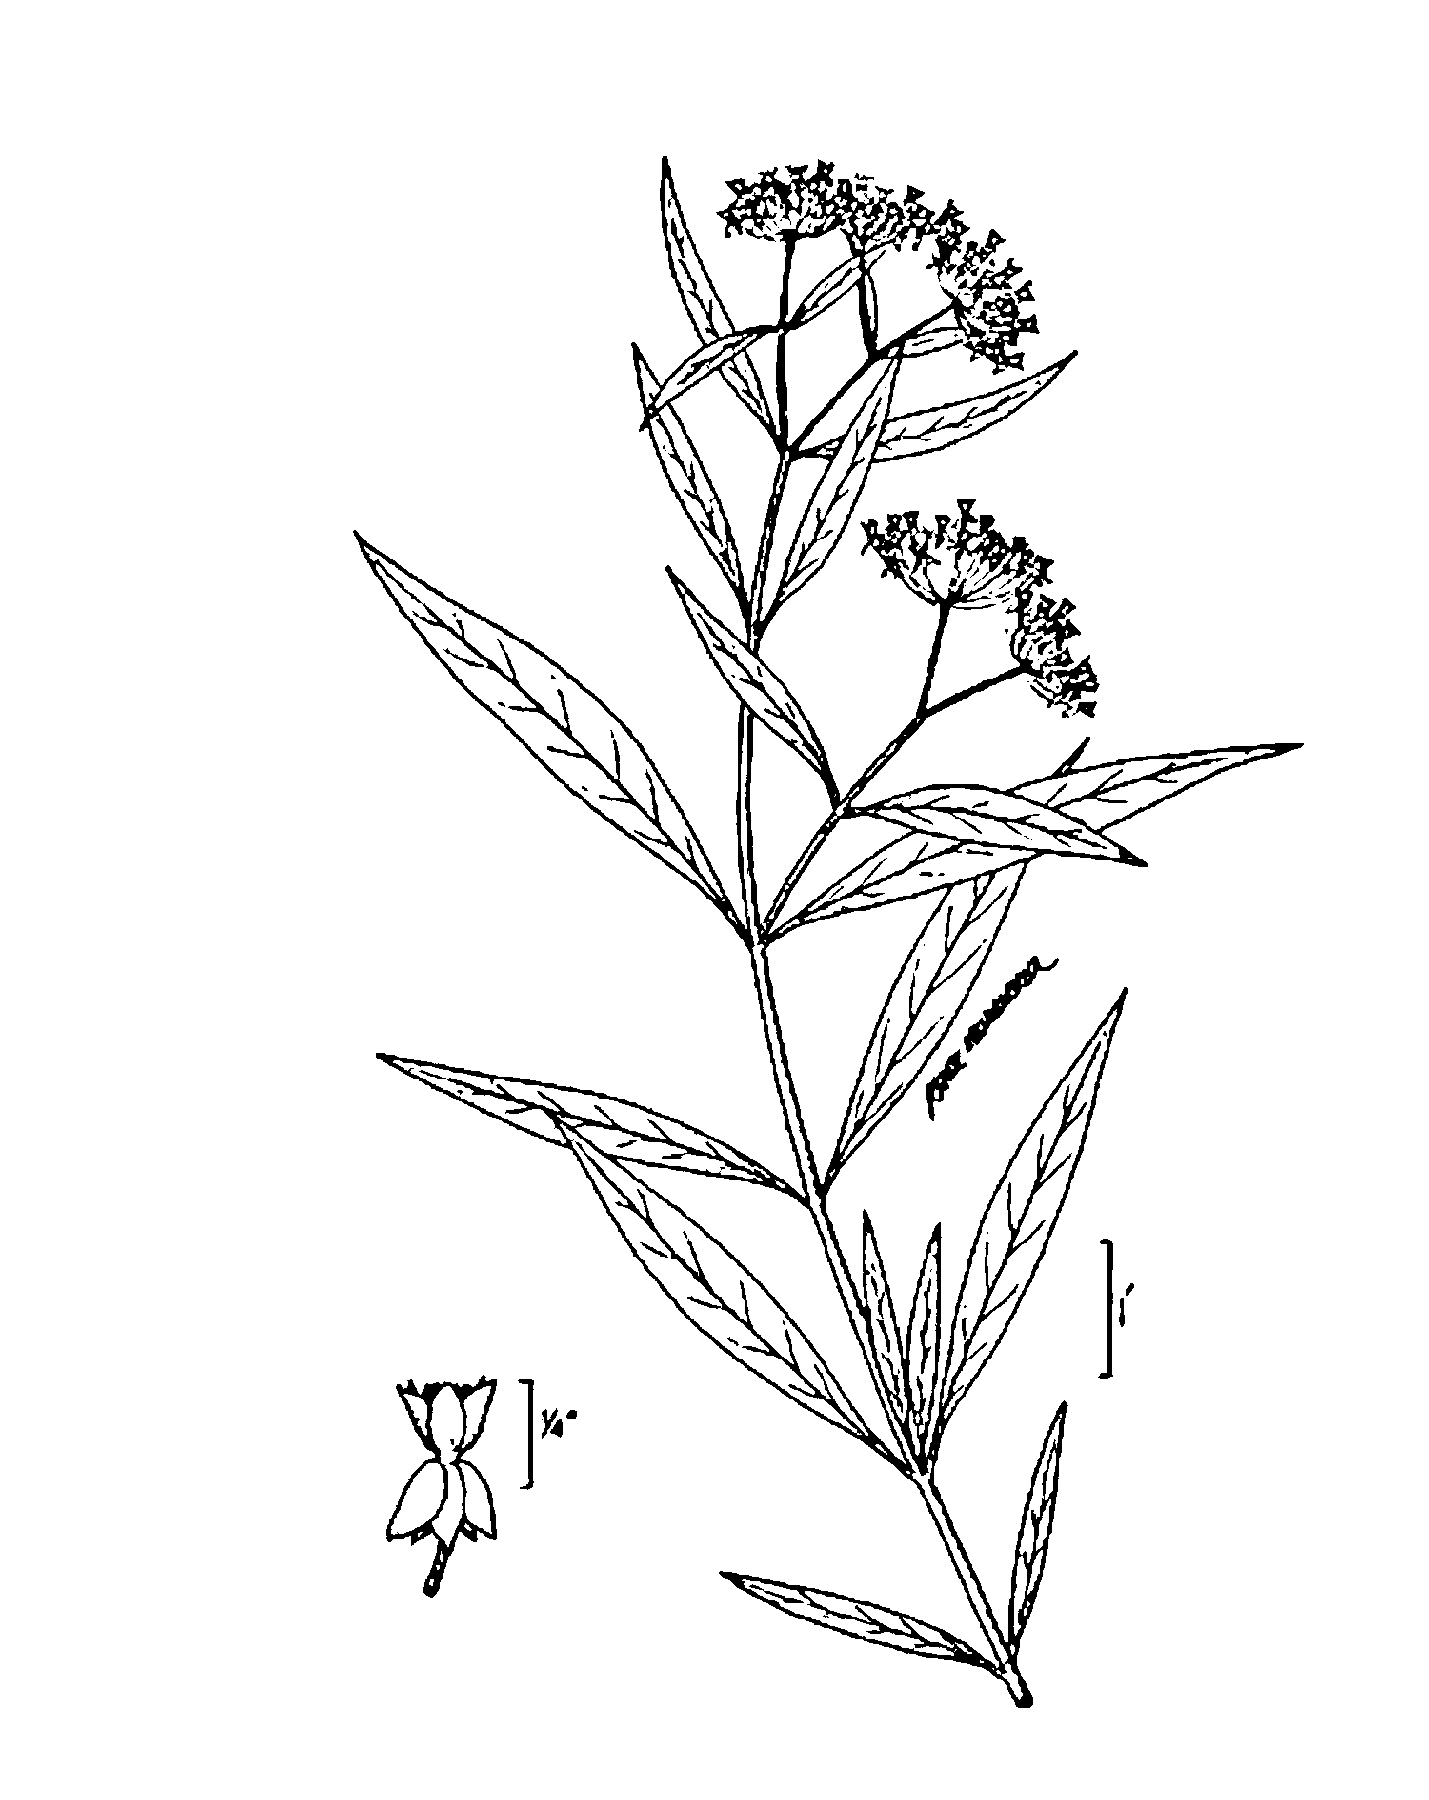 asclepias incarnata — THE NATIVE PLANT SOCIETY OF